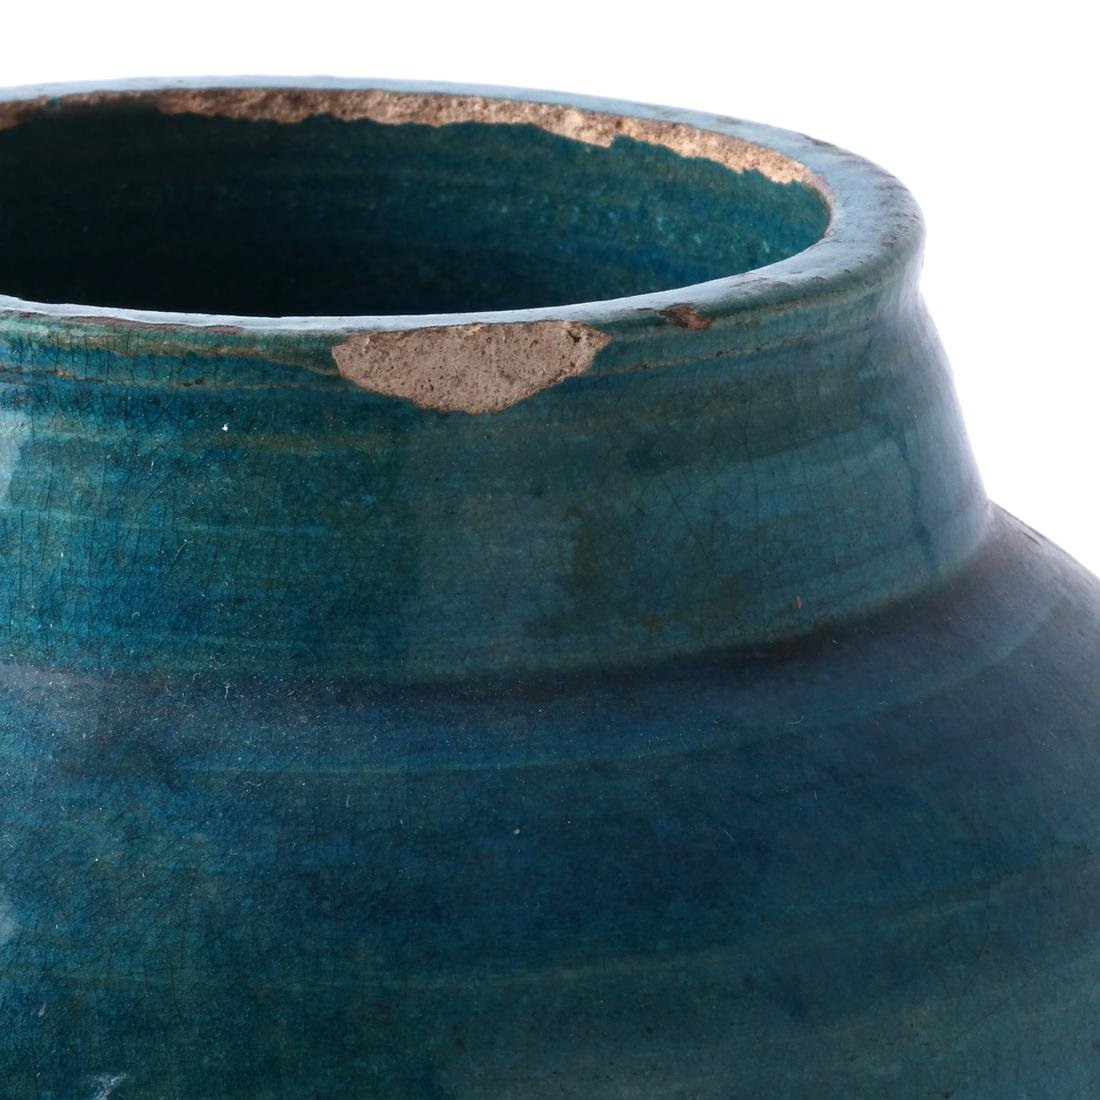 Chinese Ceramic Jar, Turquoise Colored - 2